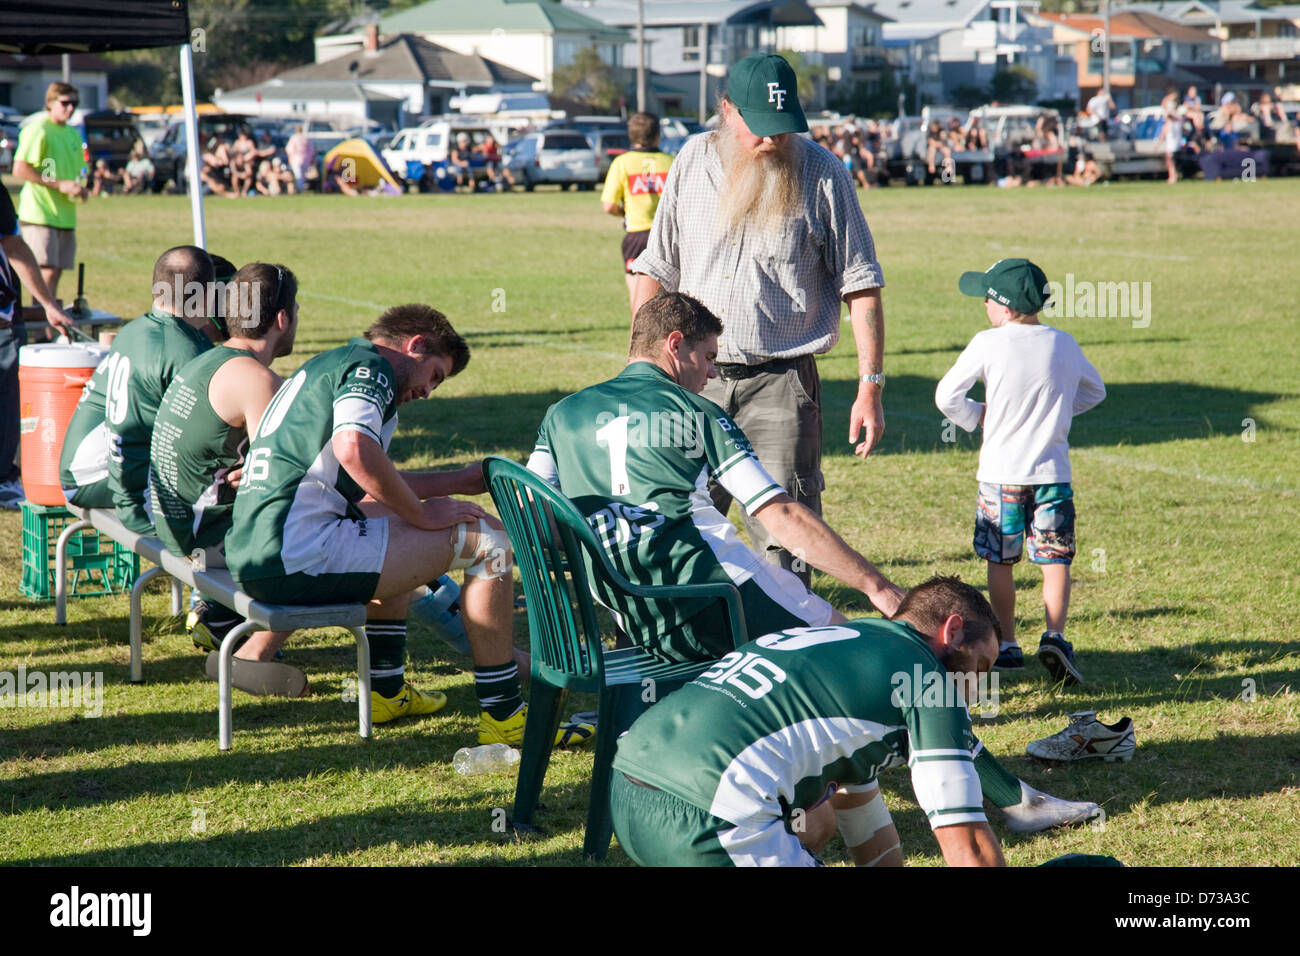 australian rugby league game being played in Sydney, players substitutes sitting beside the touchline - Stock Image